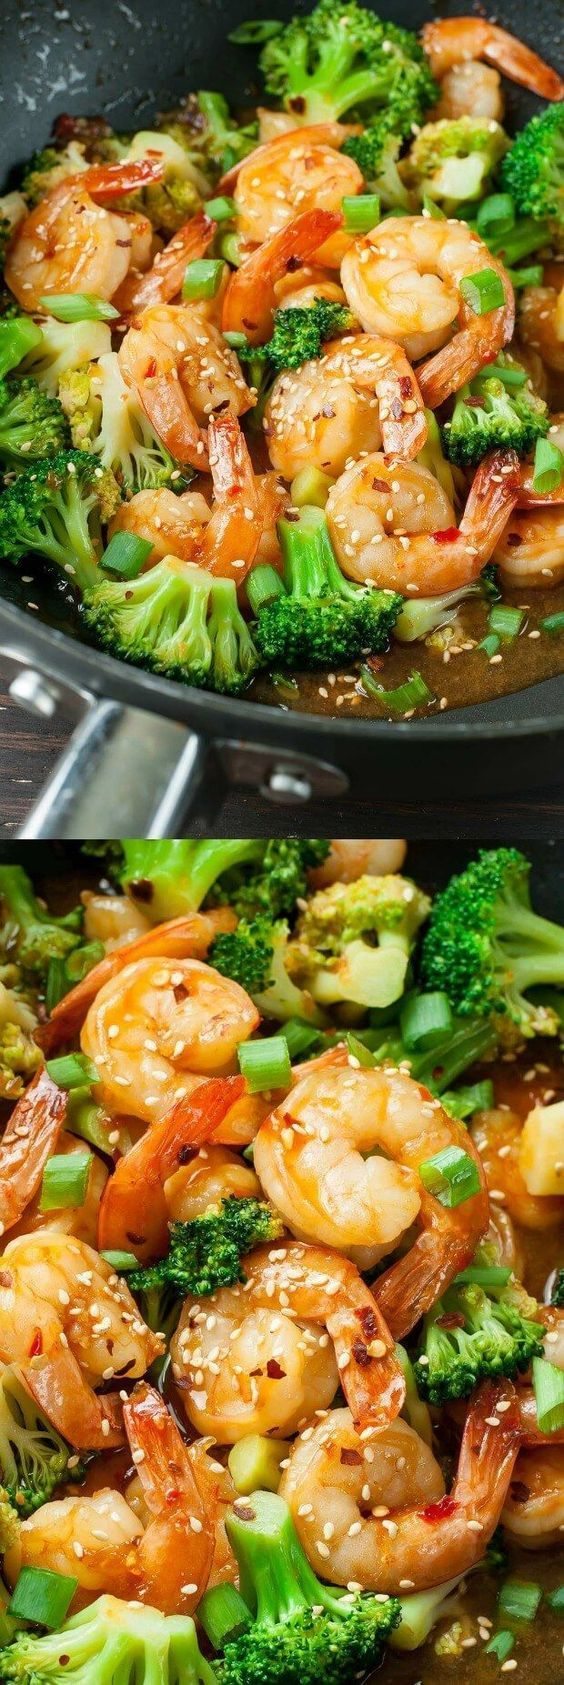 Szechuan Shrimp and Broccoli – This copycat Szechuan Shrimp and Broccoli recipe is tasty and ready in just 20 minutes. Skip the restaurant and whip up this healthy dish at home!